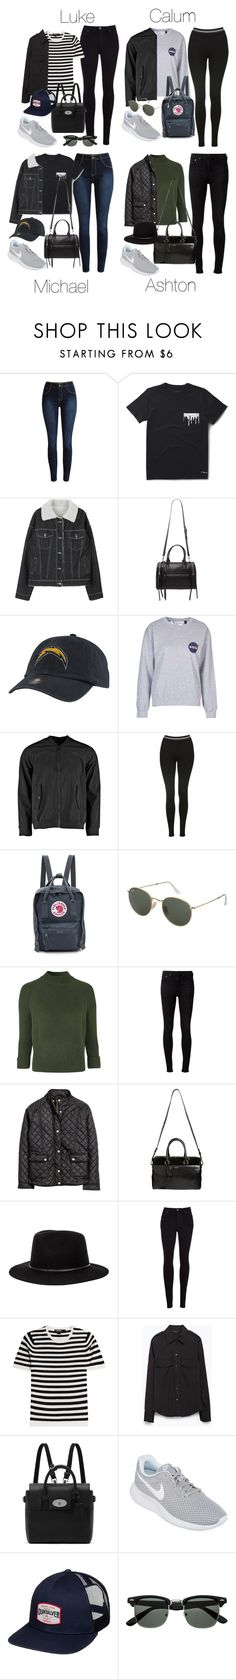 """""""5SOS Styles: NIKE Tanjun in Gray (Autumn/Winter)"""" by fivesecondsofinspiration ❤ liked on Polyvore featuring Dr. Martens, Forever 21, '47 Brand, Topshop, Fjällräven, rag & bone, H&M, Yves Saint Laurent, Brixton and Citizens of Humanity"""